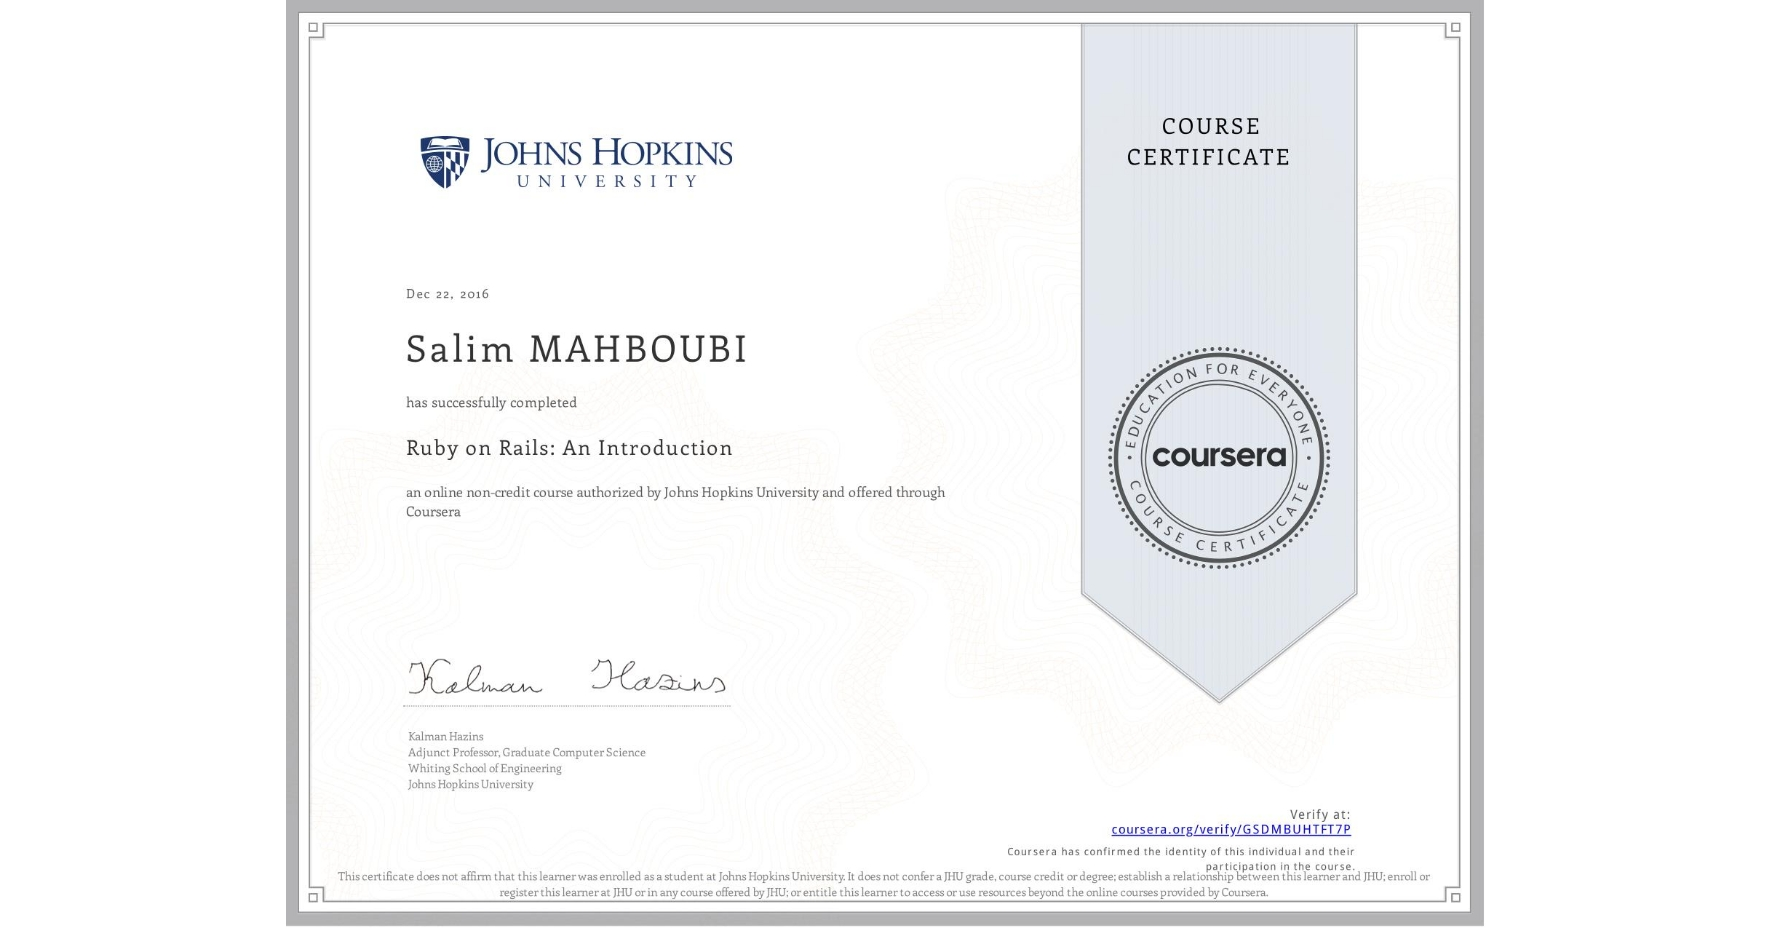 View certificate for Salim MAHBOUBI, Ruby on Rails: An Introduction, an online non-credit course authorized by Johns Hopkins University and offered through Coursera